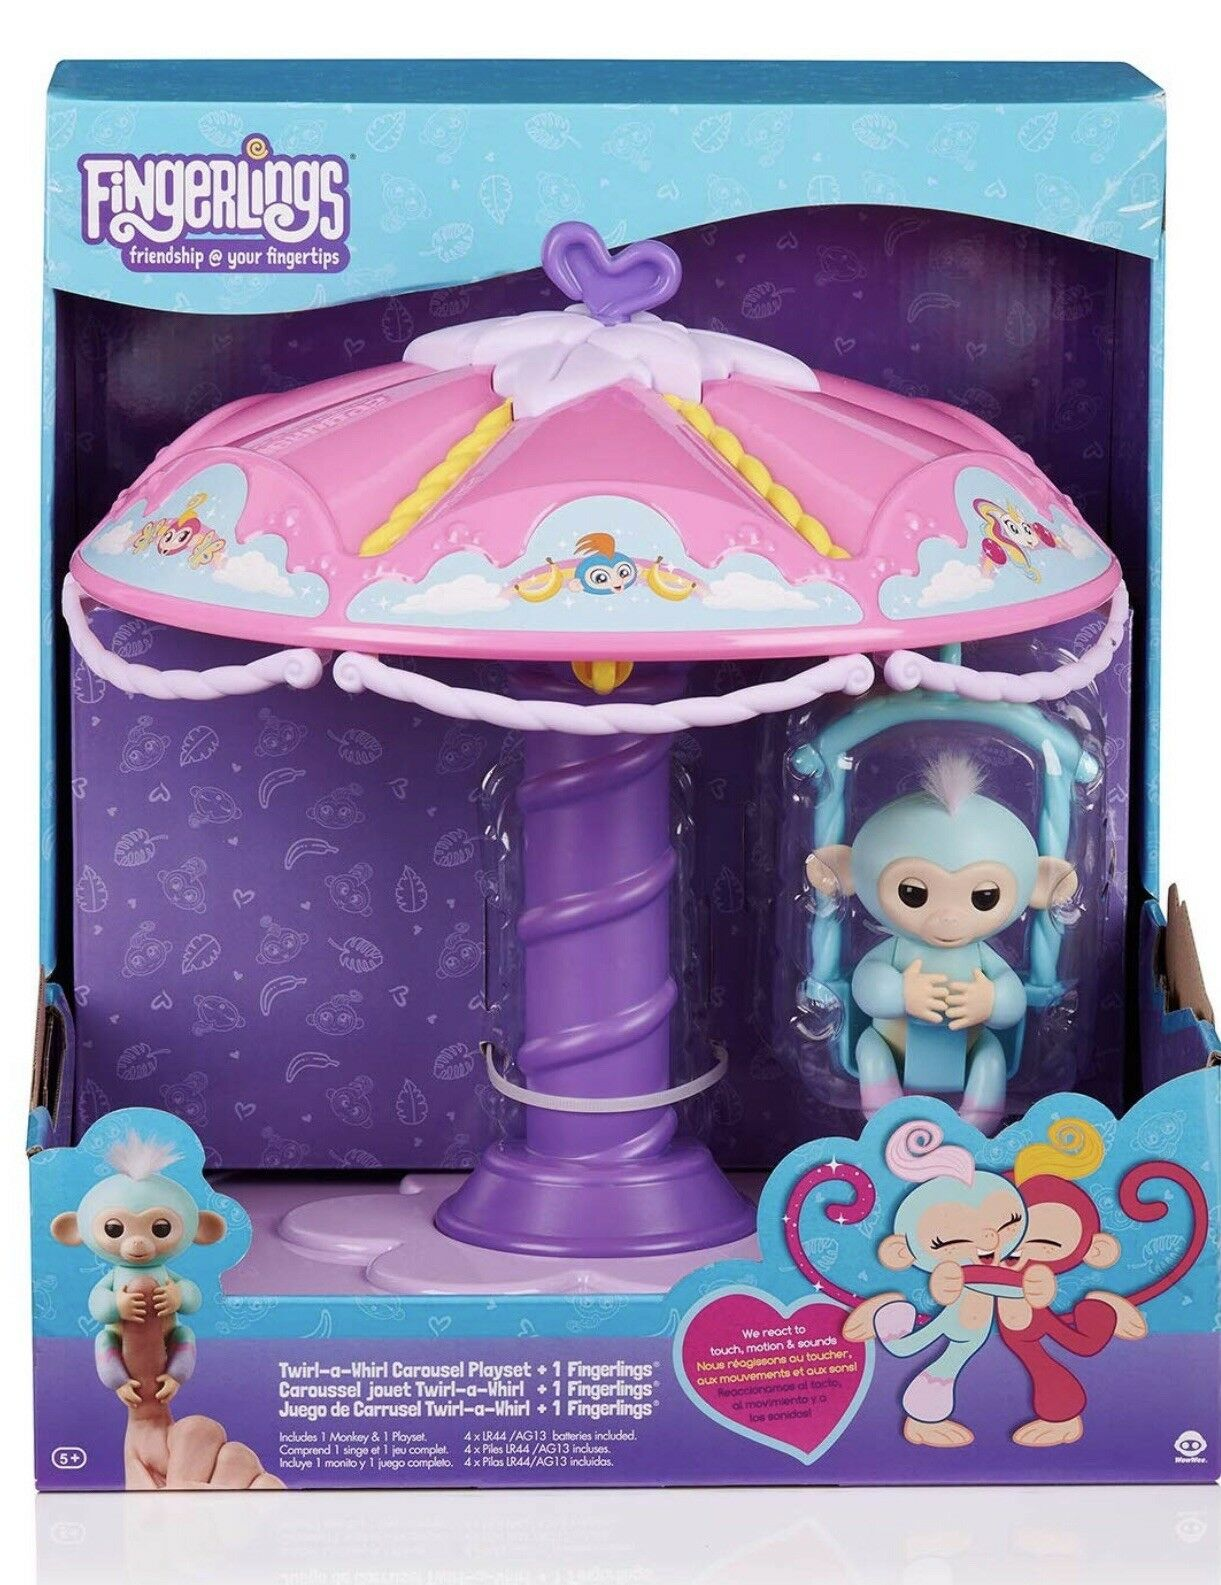 WowWee New Fingerlings Carousel Playset With 1 Fingerling Baby Monkey bluee Pink